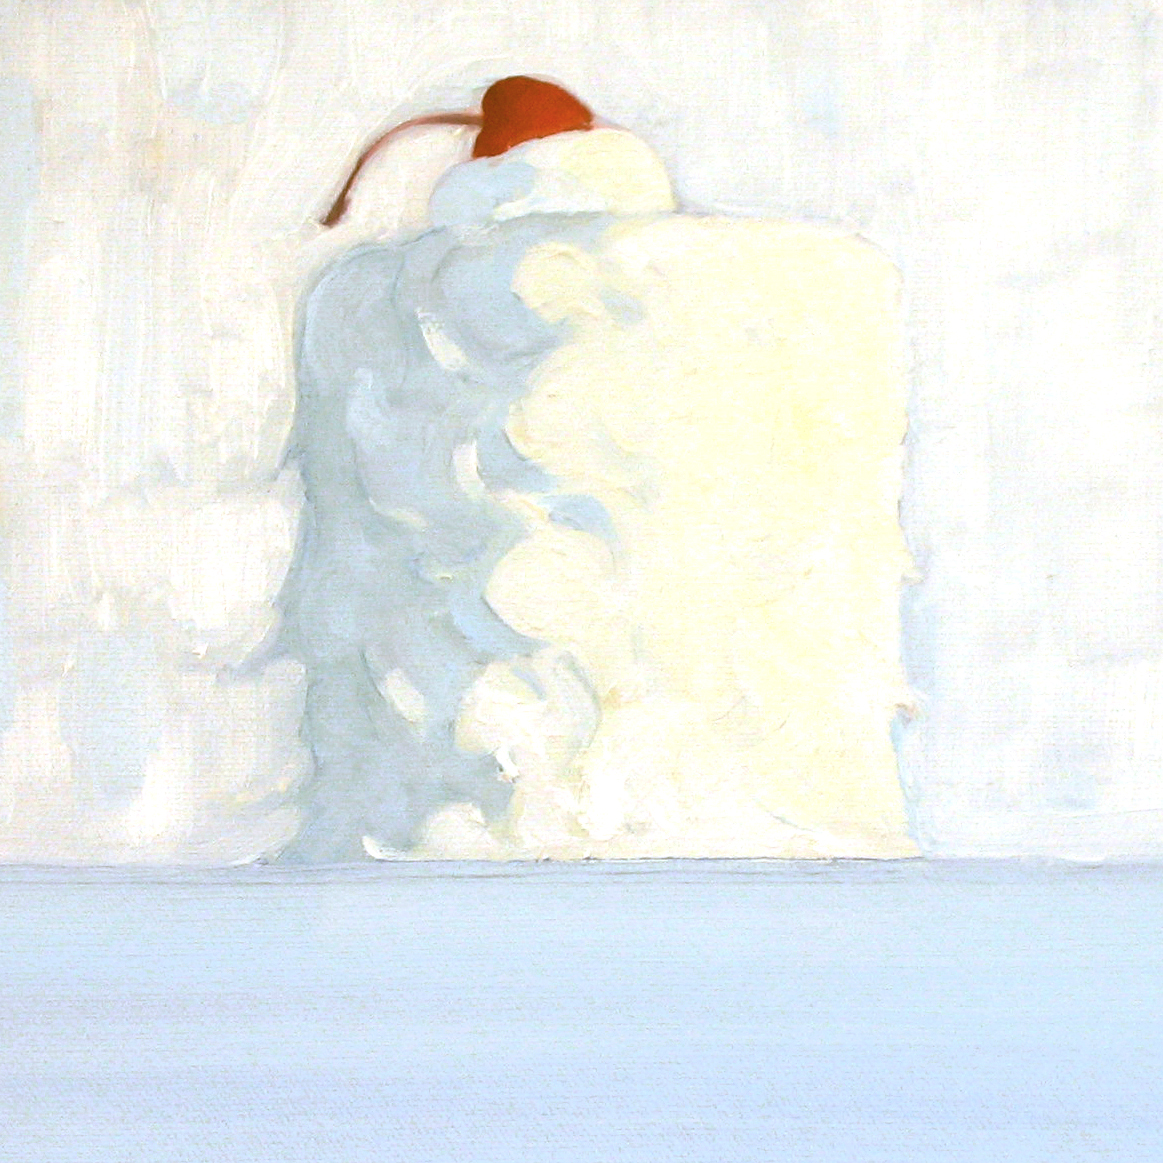 Baker's Delight  12 x 12 inches Oil on Canvas 2008